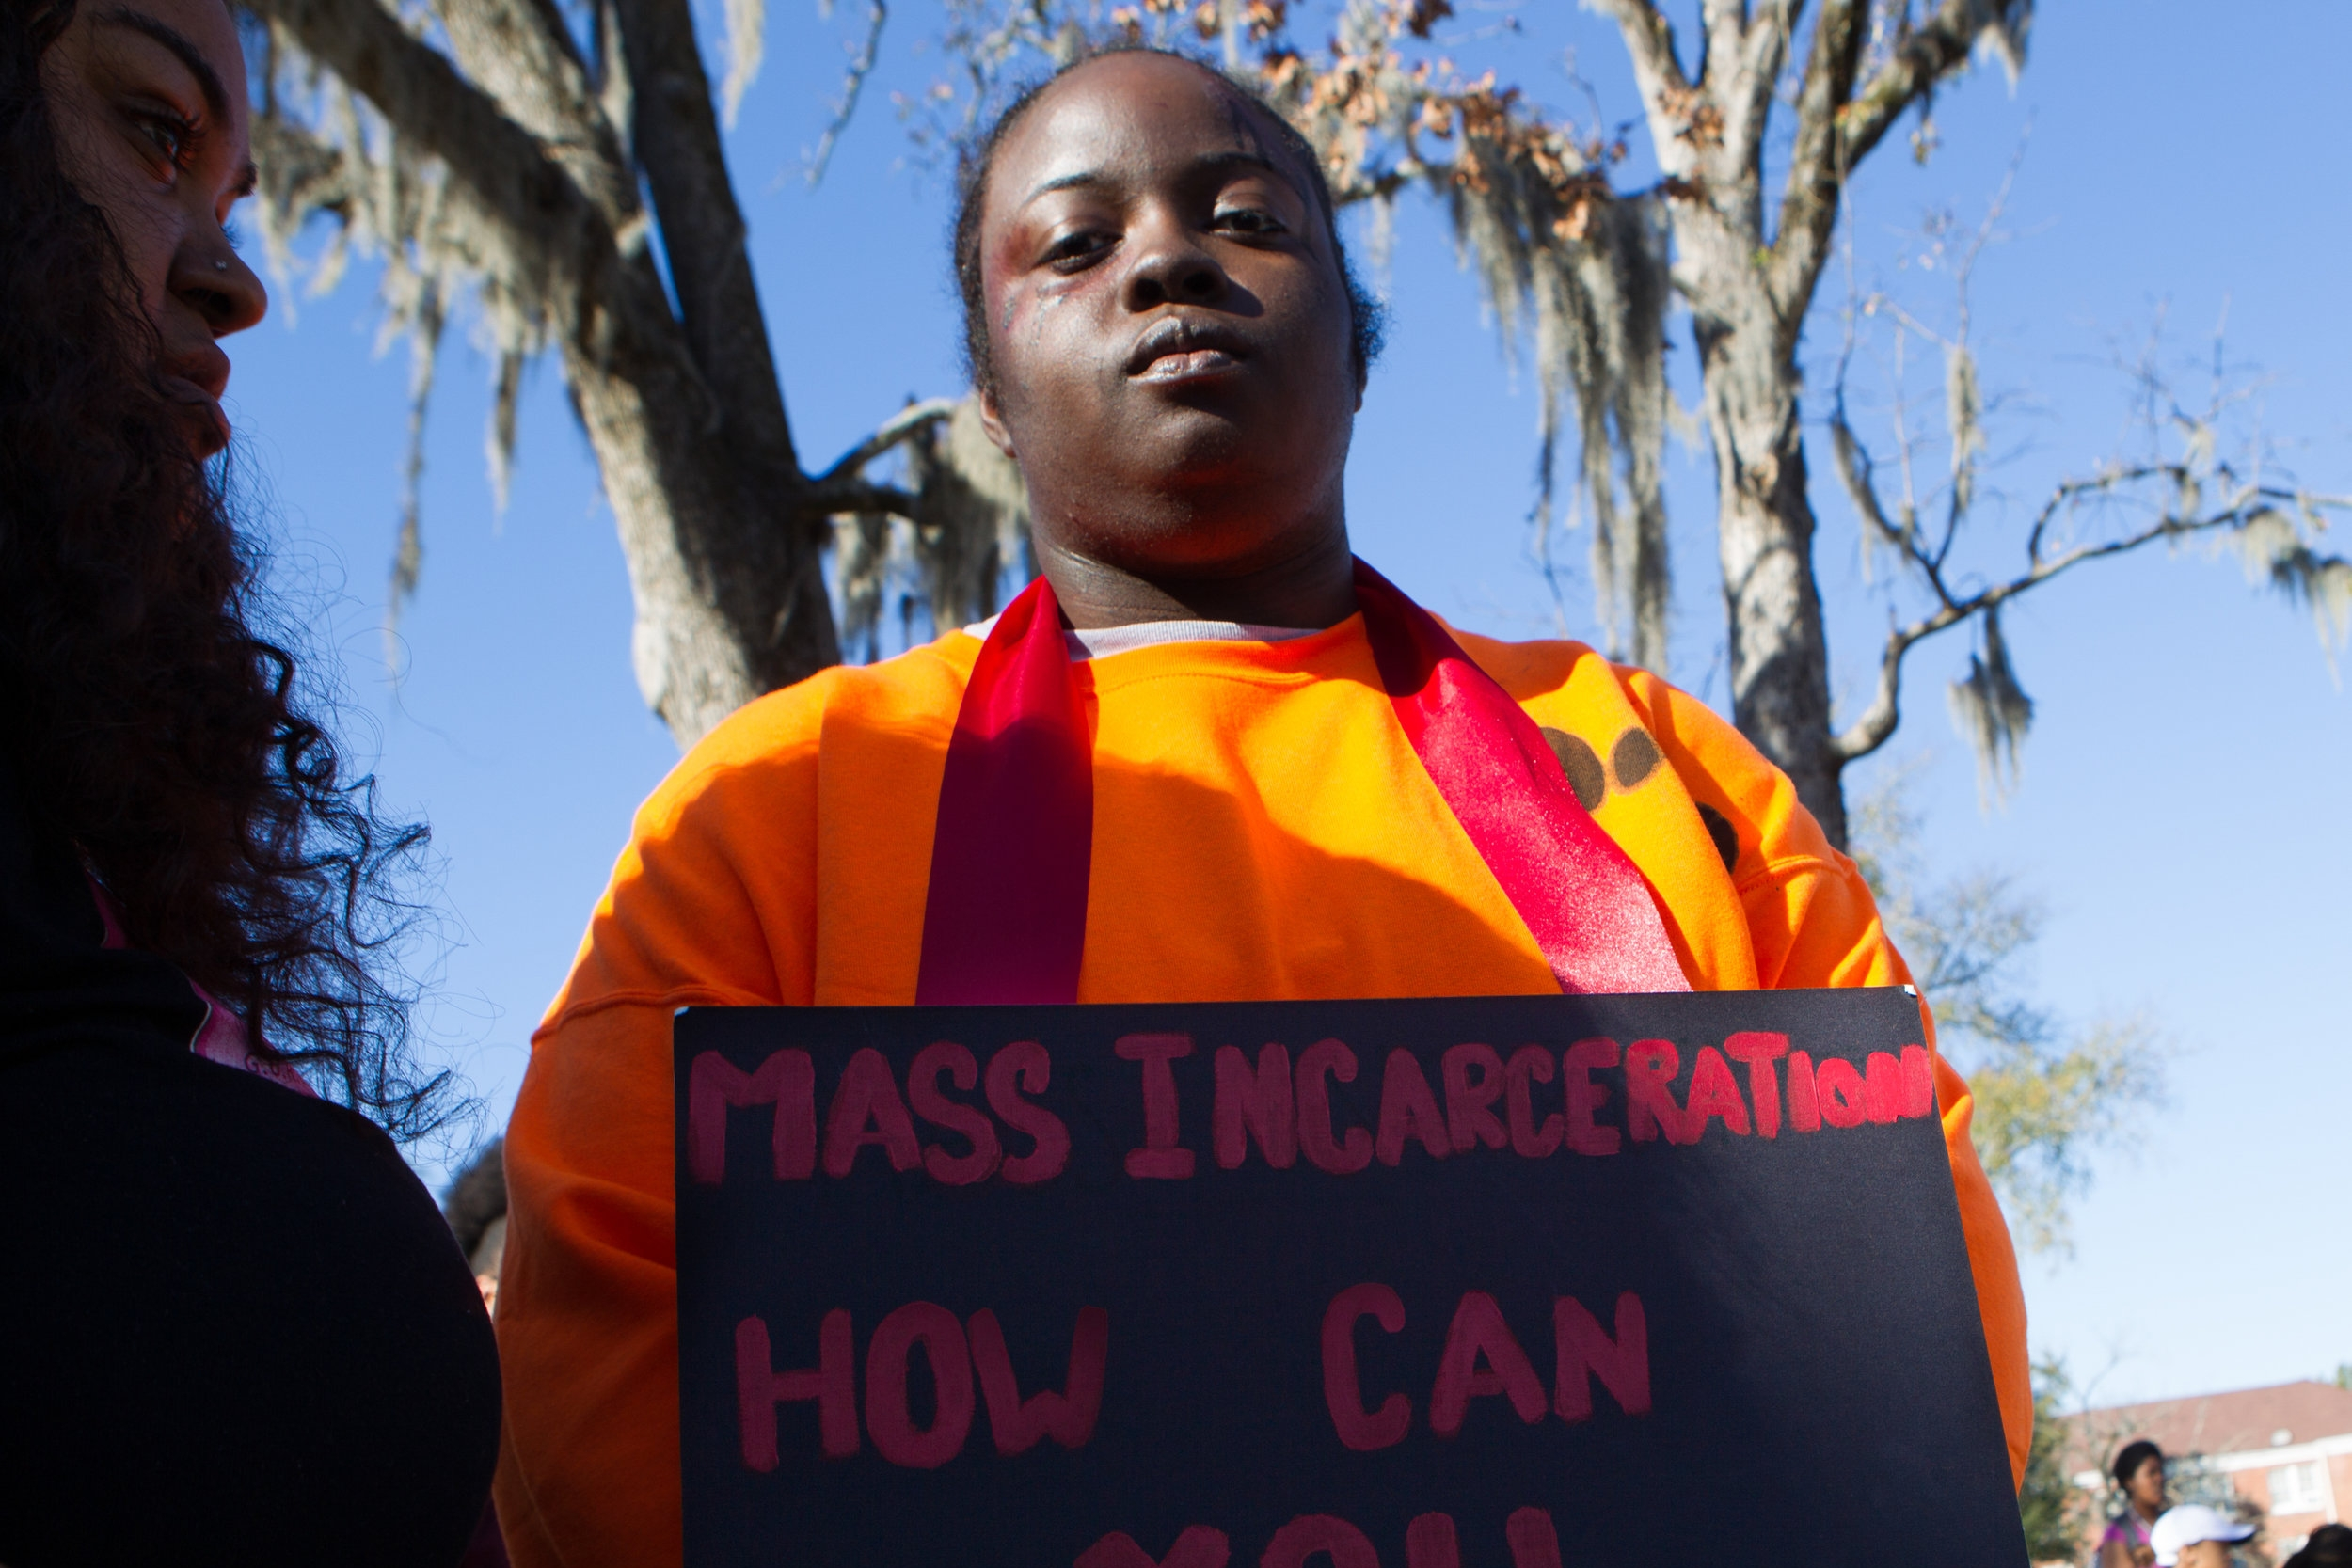 Student wearing prison uniform in protest of mass incarceration.